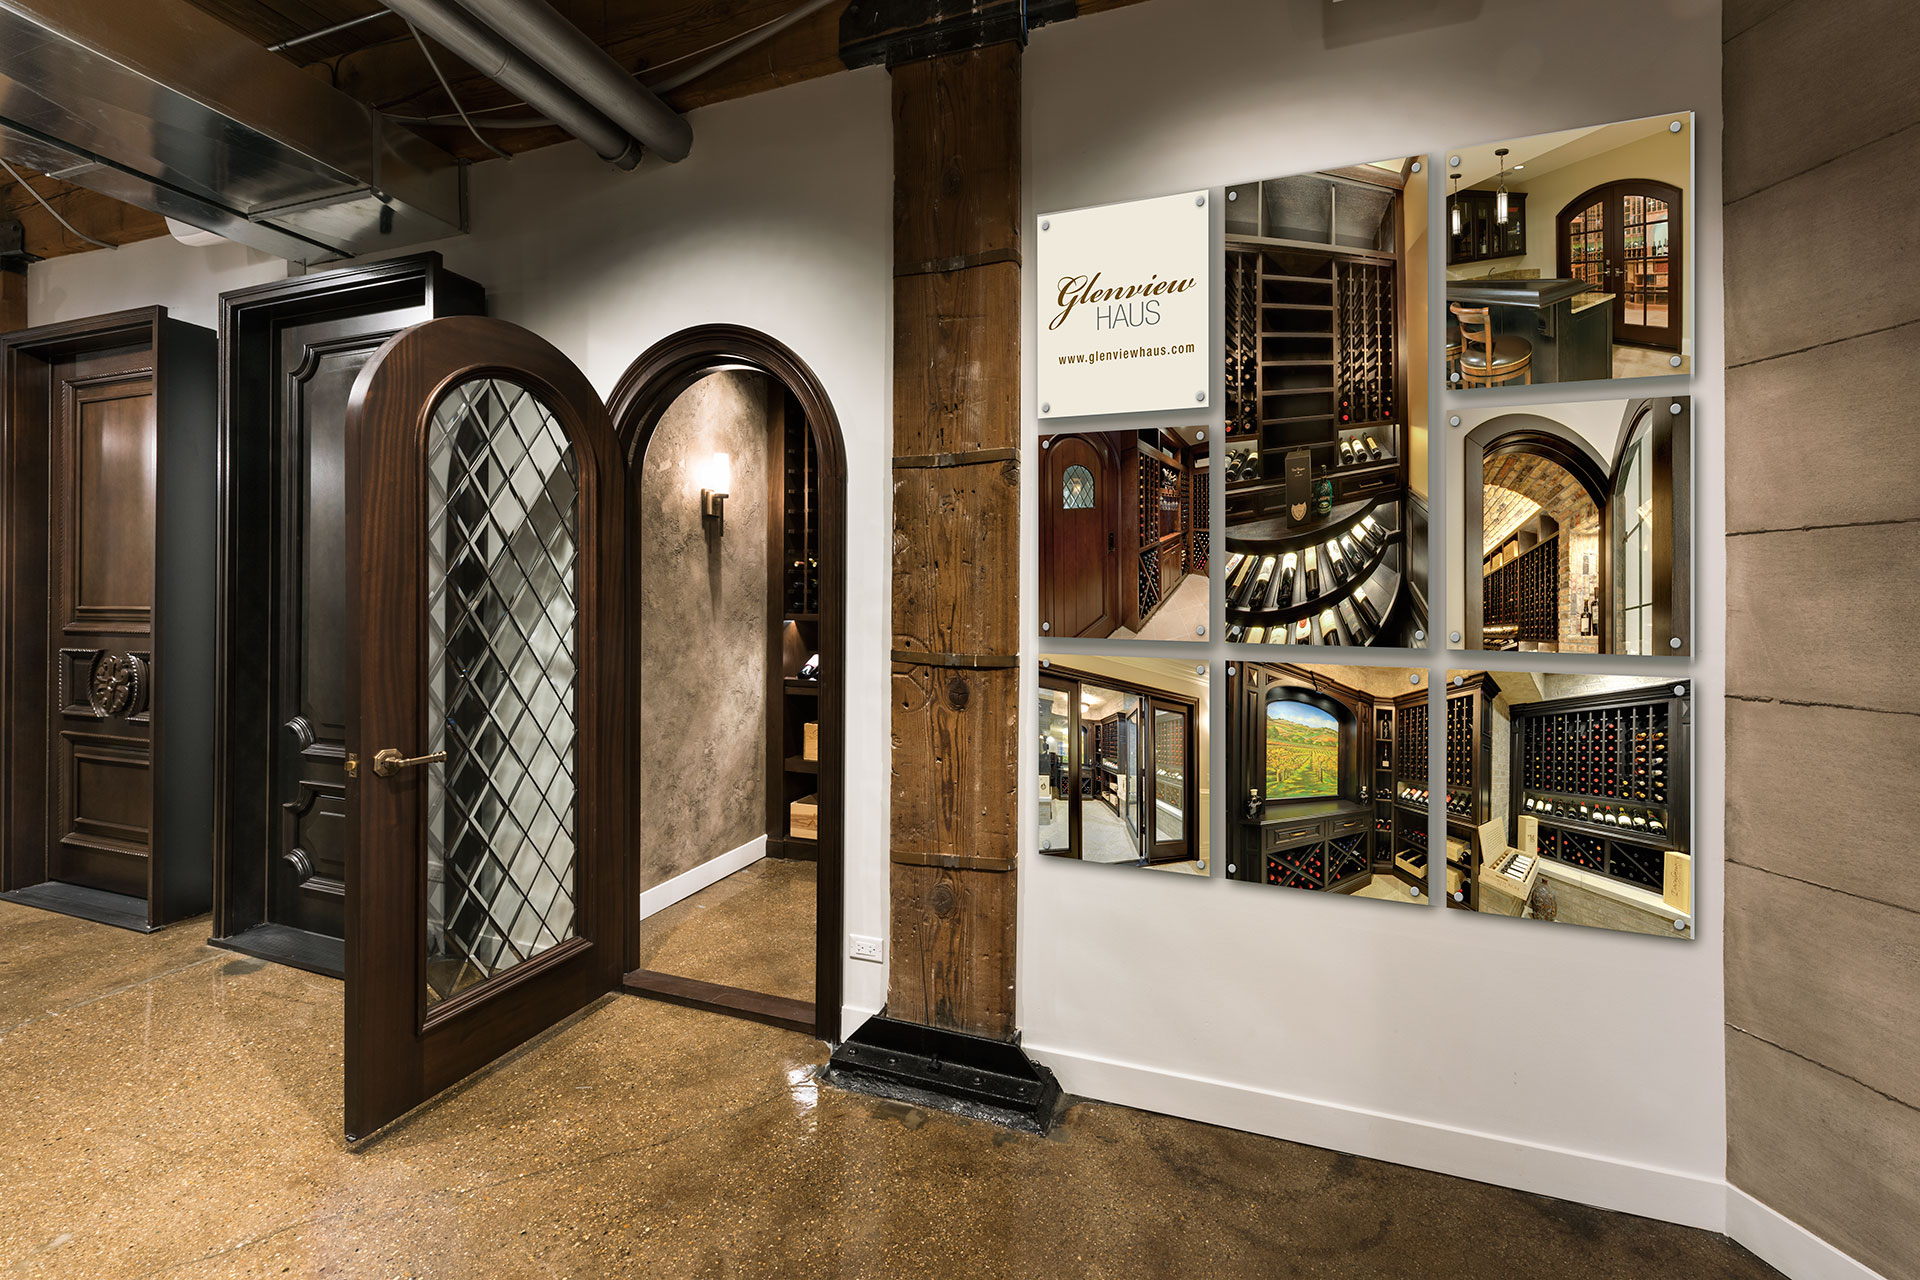 Glenview haus showroom custom doors and wine cellars at glenview haus chicago il 60654 for Walk in wine cellar